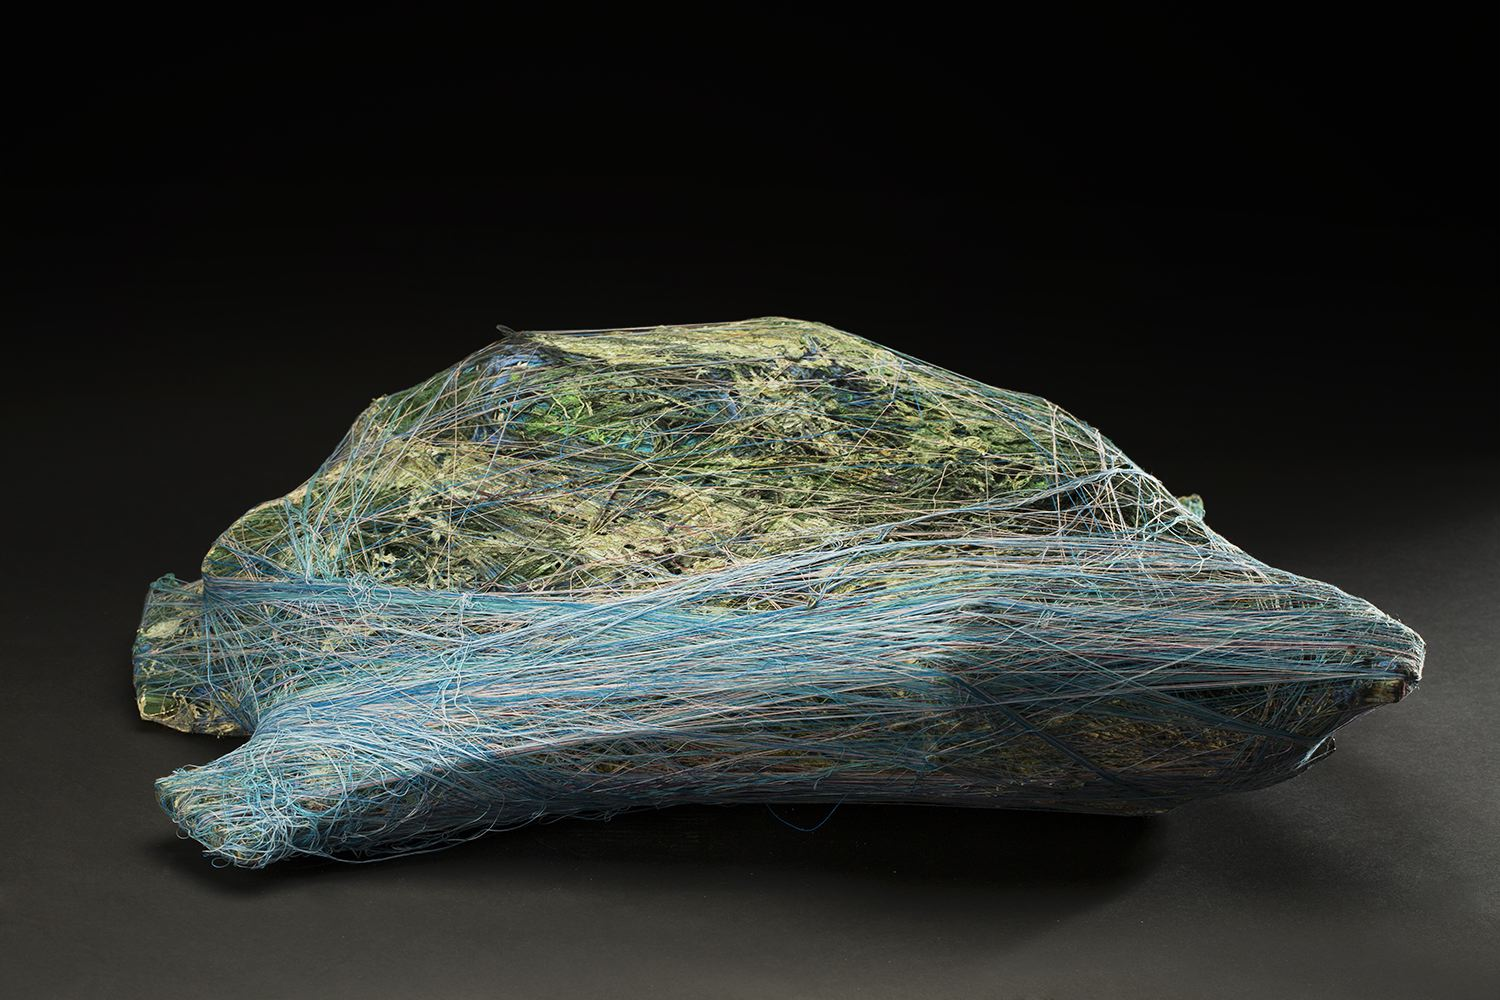 Tony Pedemonte    Untitled  , 2016 Fiber and wood 9 x 22 x 28 inches 22.9 x 55.9 x 71.1 cm TPed 23